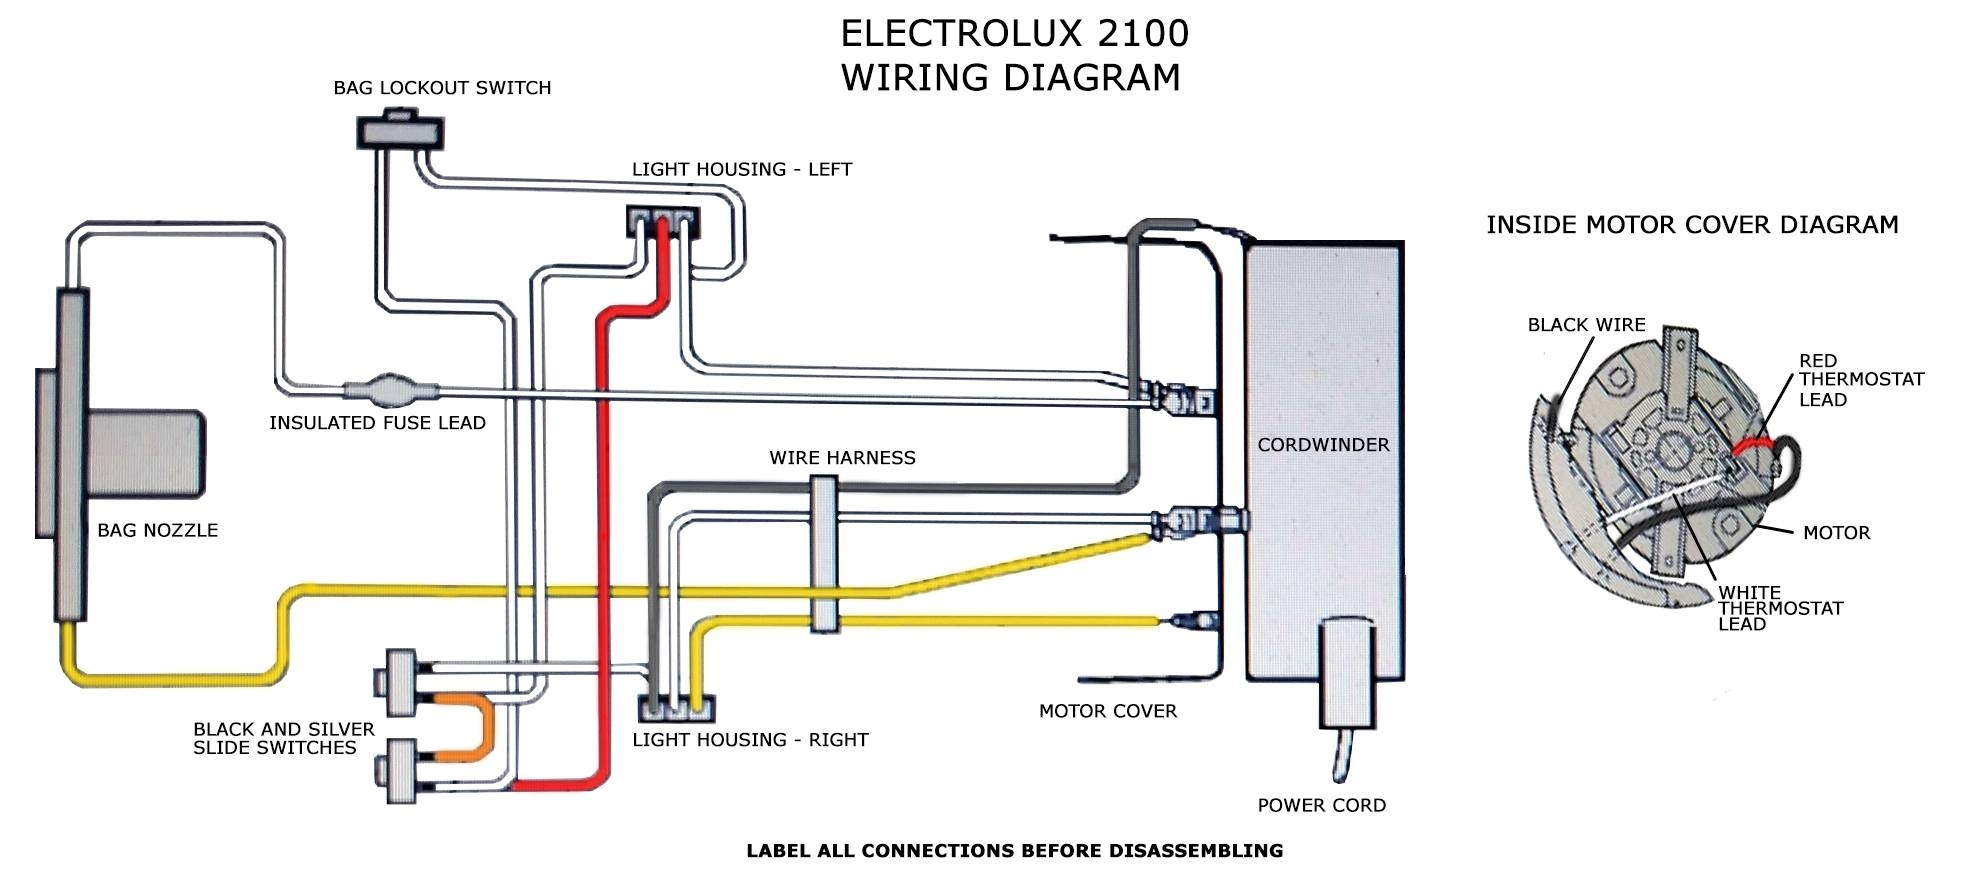 electrolux vacuum wiring diagram Download-electrolux vacuum wiring diagram Collection 2100 20wiring 20diagram In Electrolux Wiring 14 s DOWNLOAD Wiring Diagram 19-e